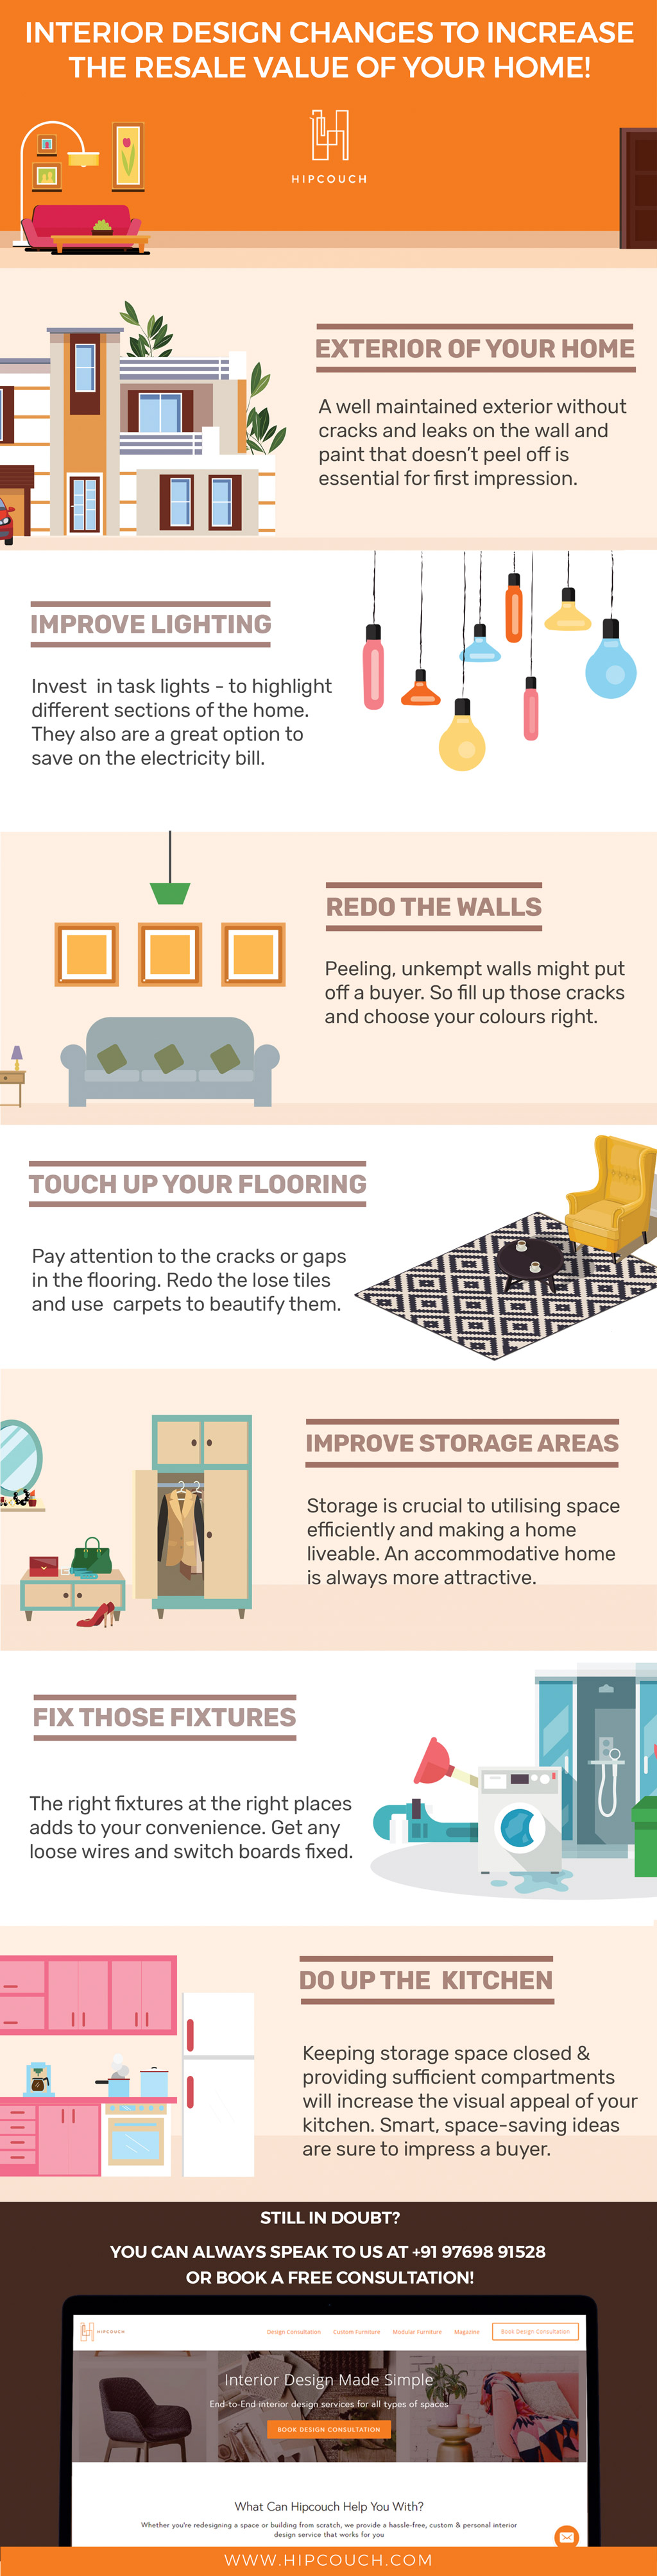 10 Hacks To Make Your Home Look Glam!